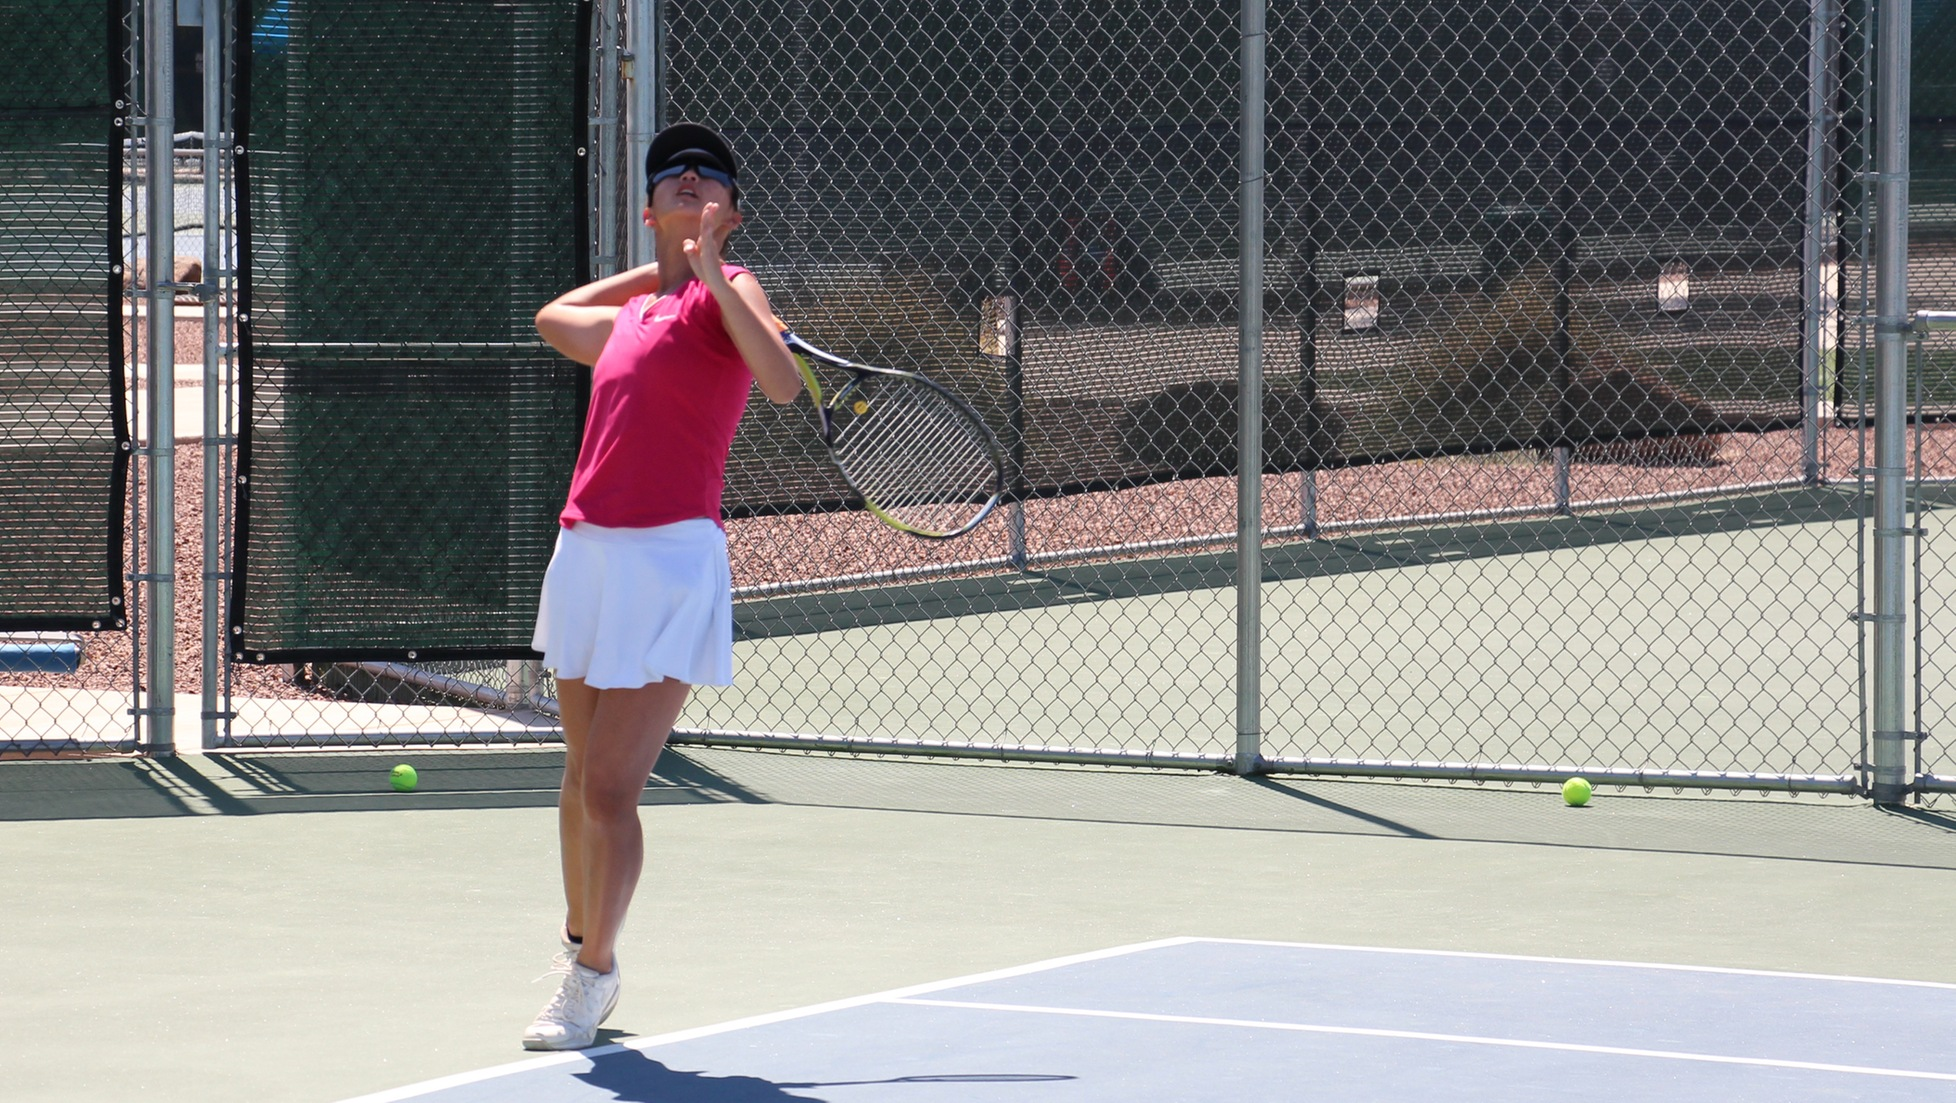 Michelle Li Sha Khoo sealed the Seasiders win with a 6-3, 6-3 victory in singles.